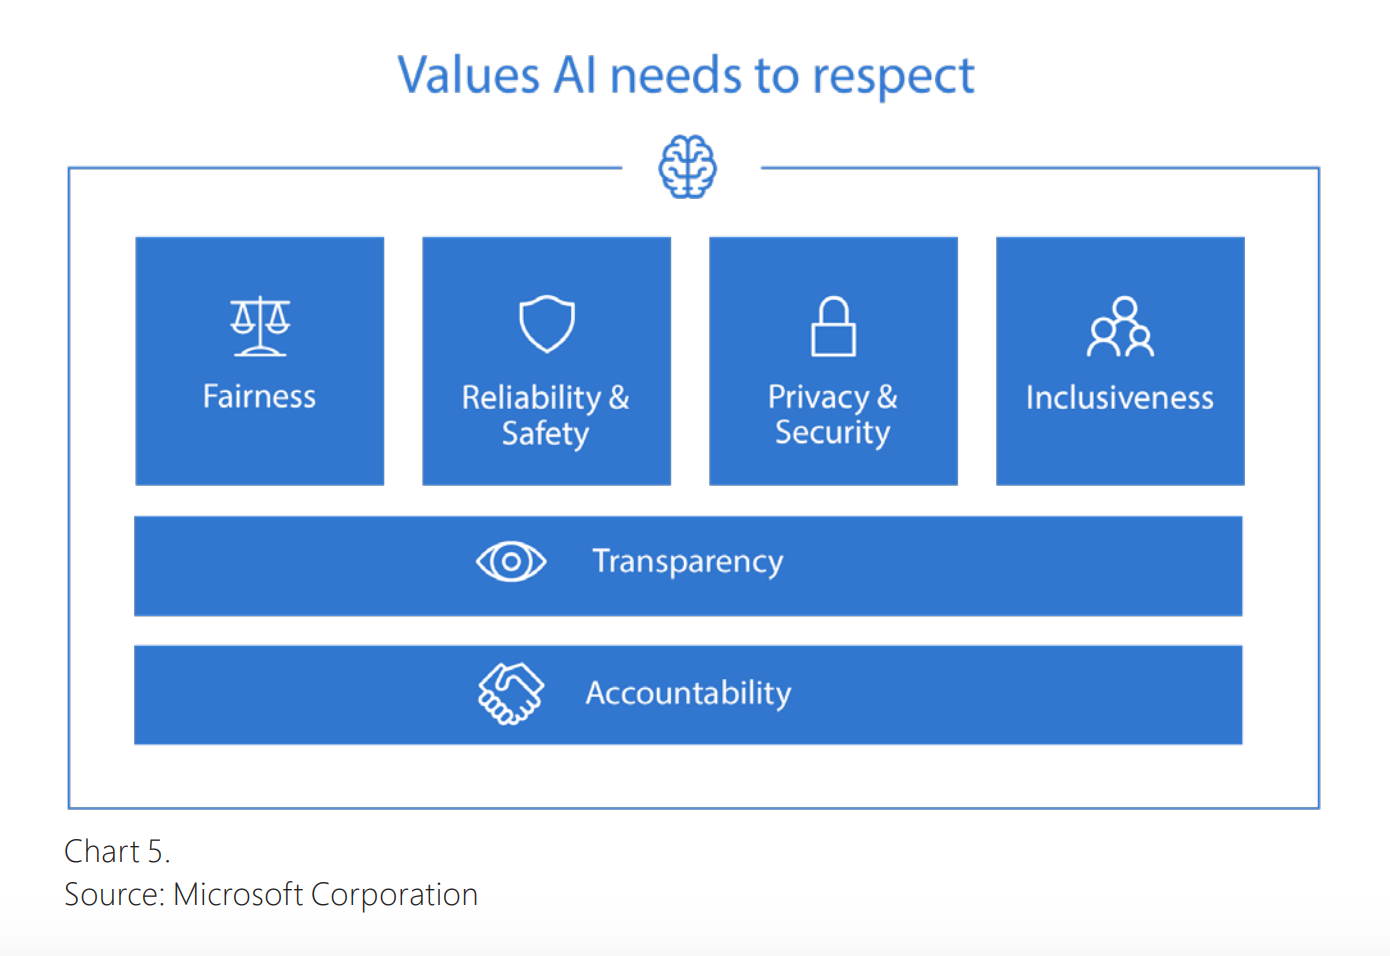 Values AI needs to respect